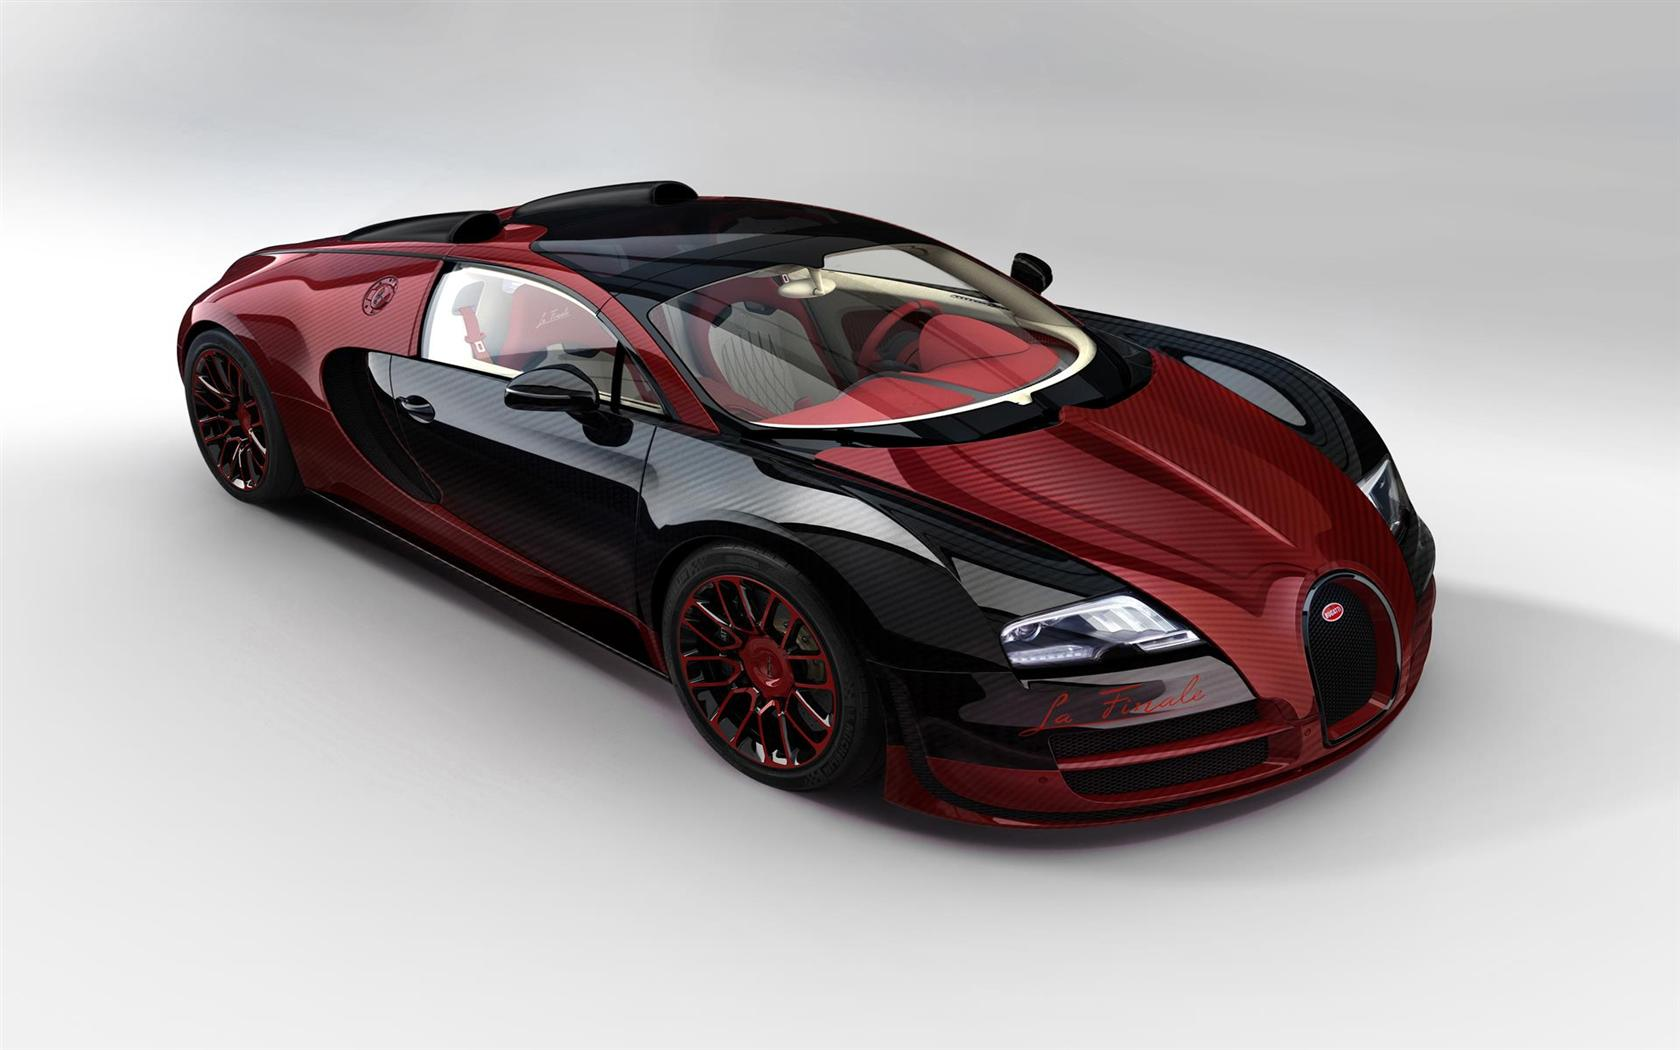 2015 bugatti veyron grand sport vitesse la finale images photo bugatti grand sport vitesse. Black Bedroom Furniture Sets. Home Design Ideas